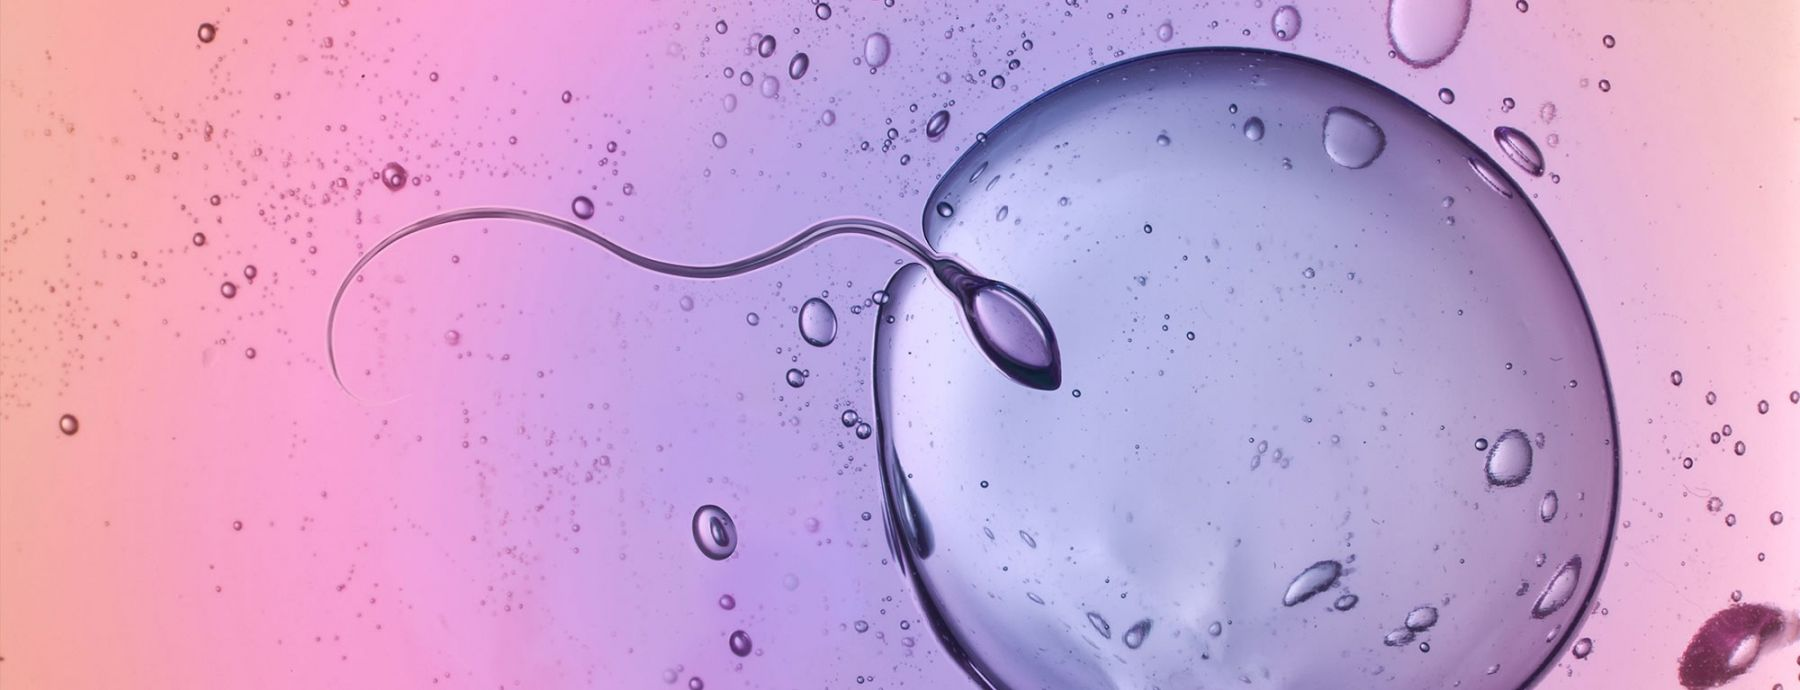 Reproductive Biology and Health hero image